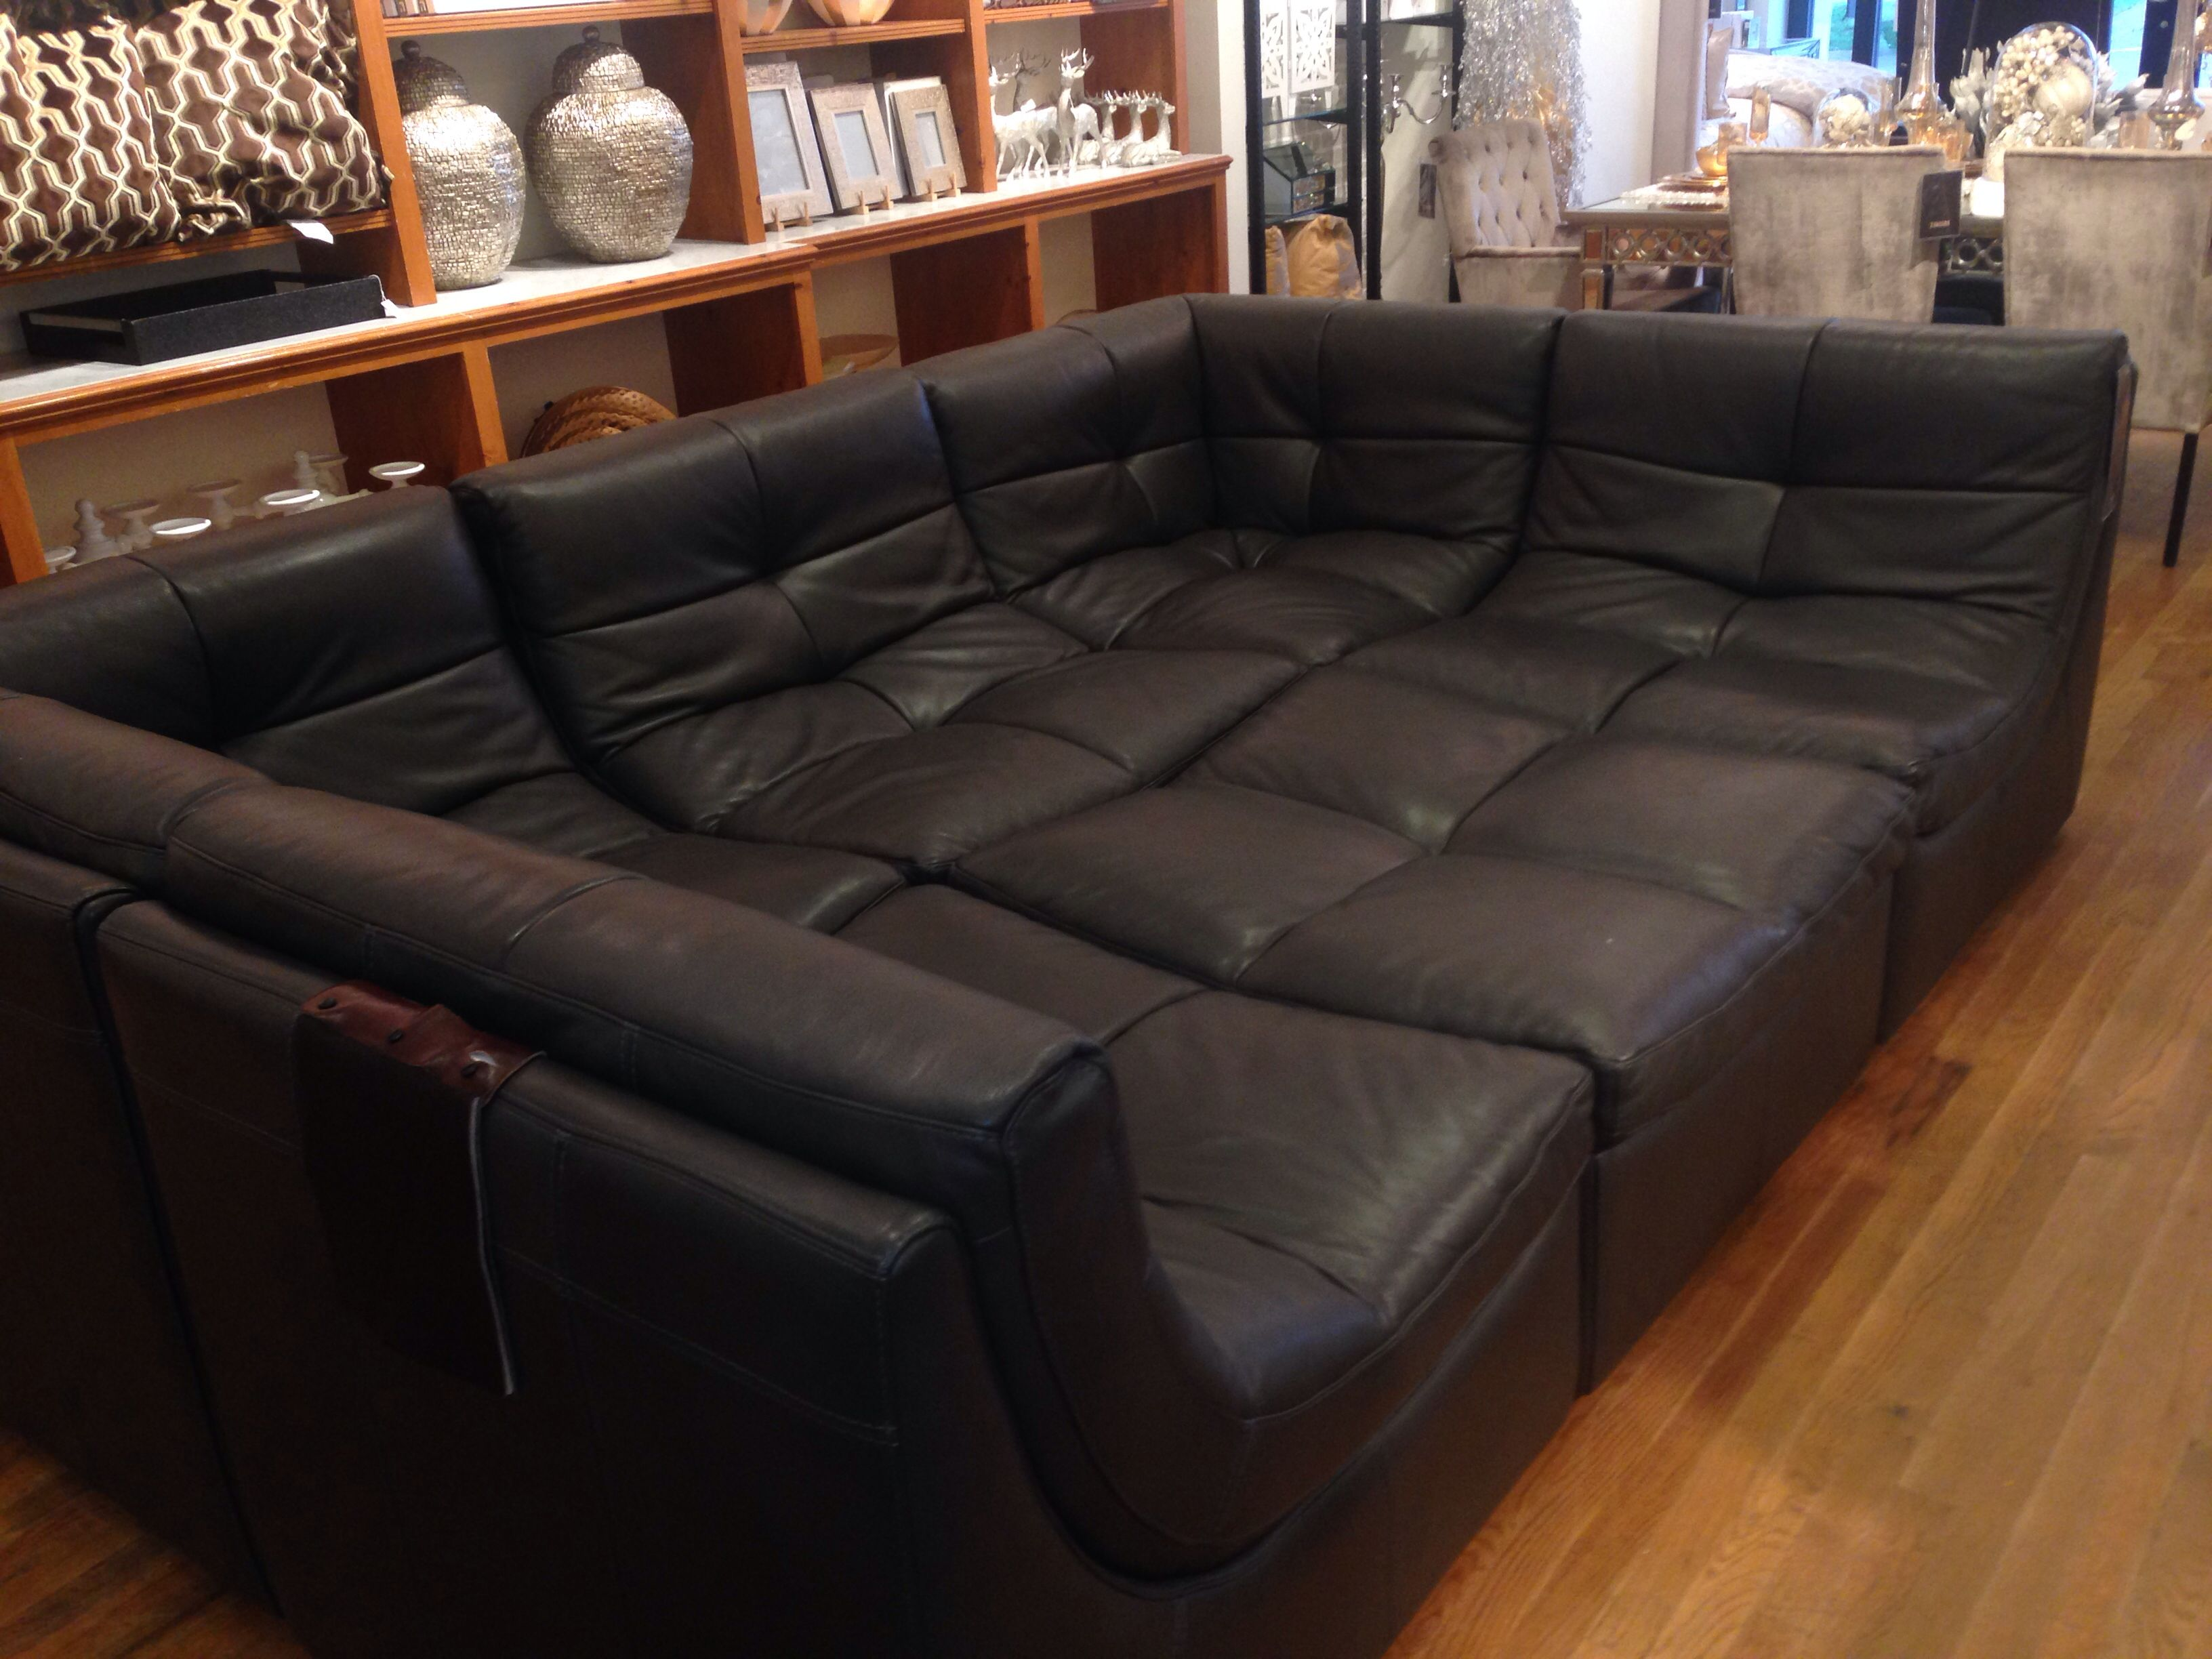 Elite home theater seating cuddle couch - Find This Pin And More On Theater Room Our New Couch